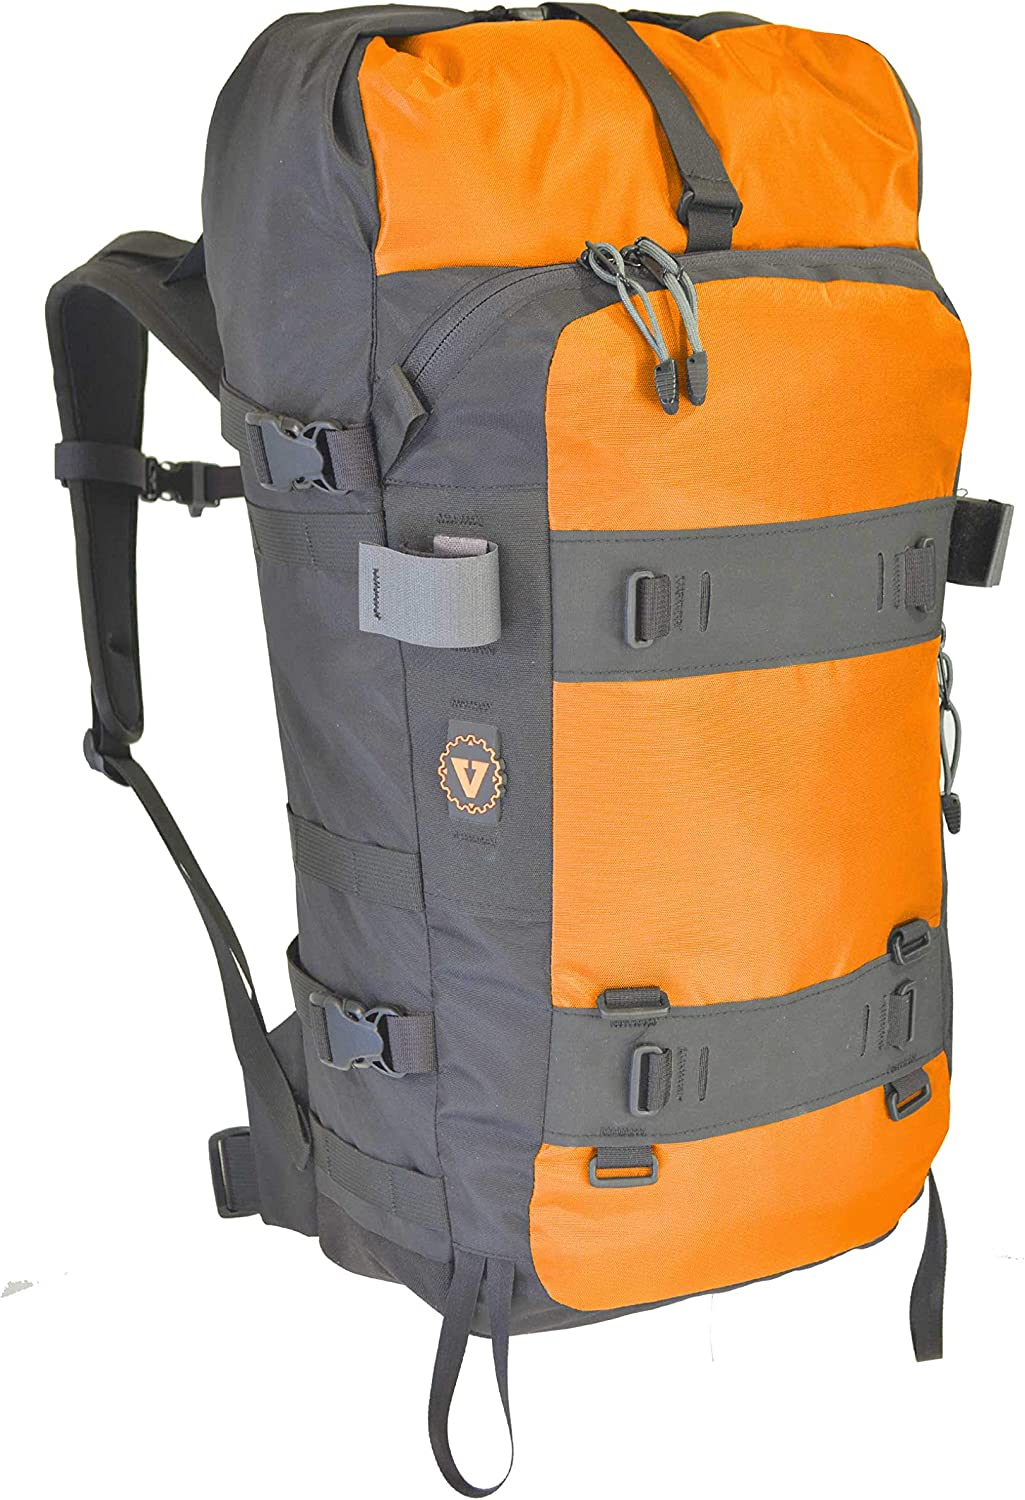 Large discharge sale Vertical Gear Hightrail Limited time trial price 45 Backpack